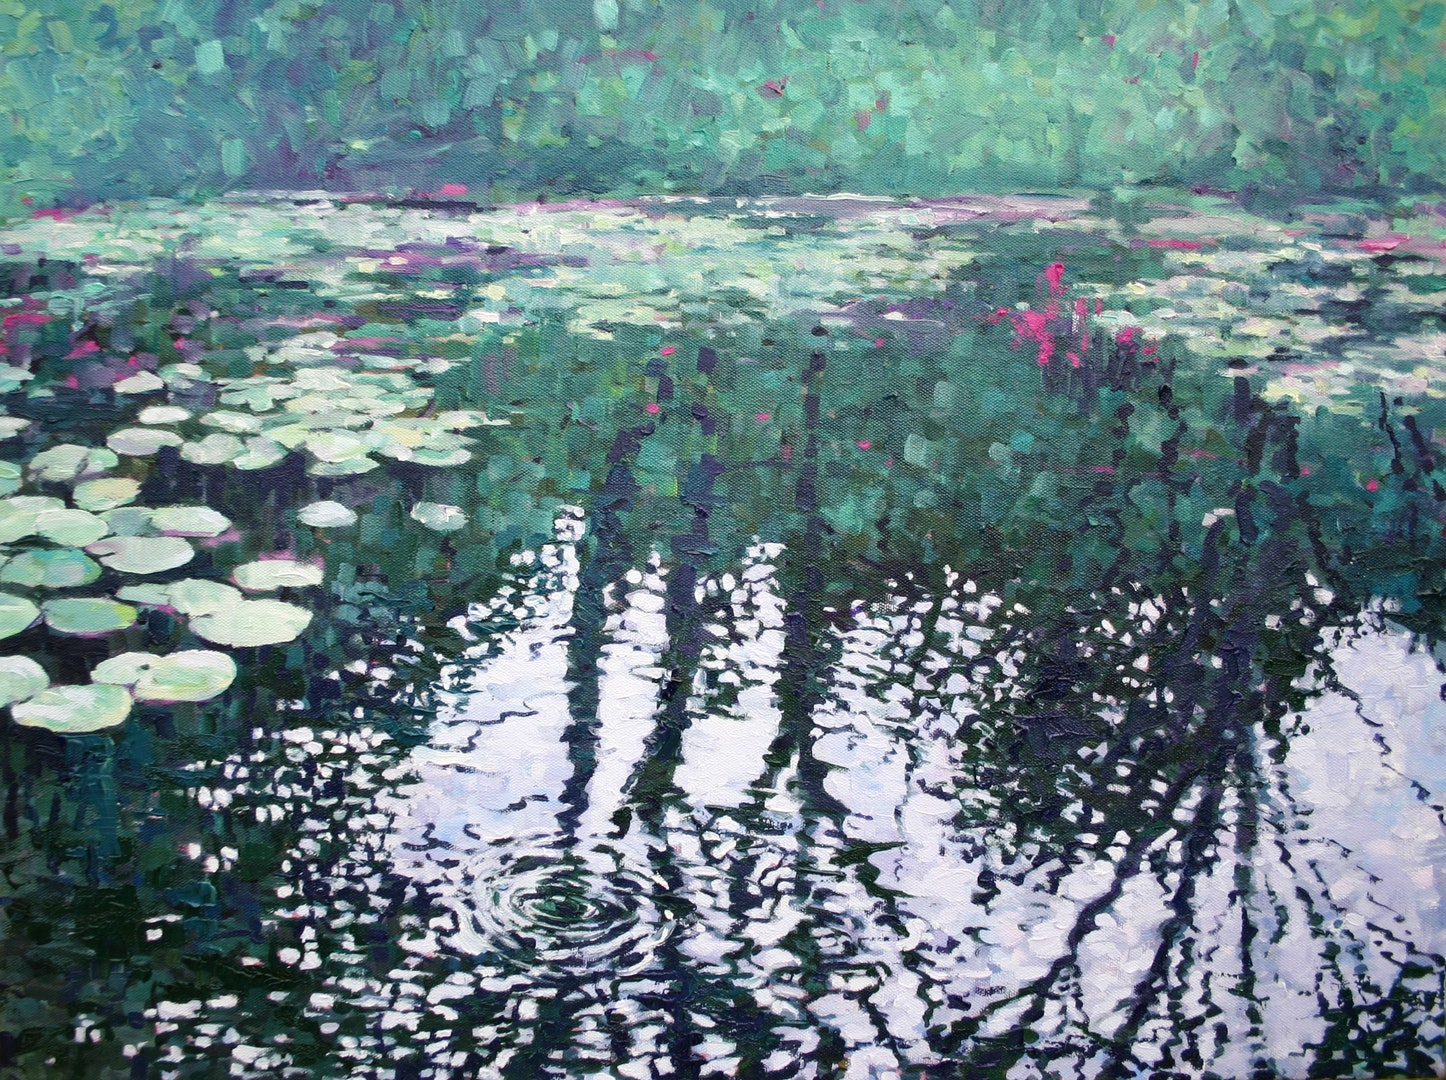 Zoe Norman  Lily Pond Reflections  Oil on stretched cotton canvas, 46 x 61 cm  http://www.zoeelizabethnorman.com